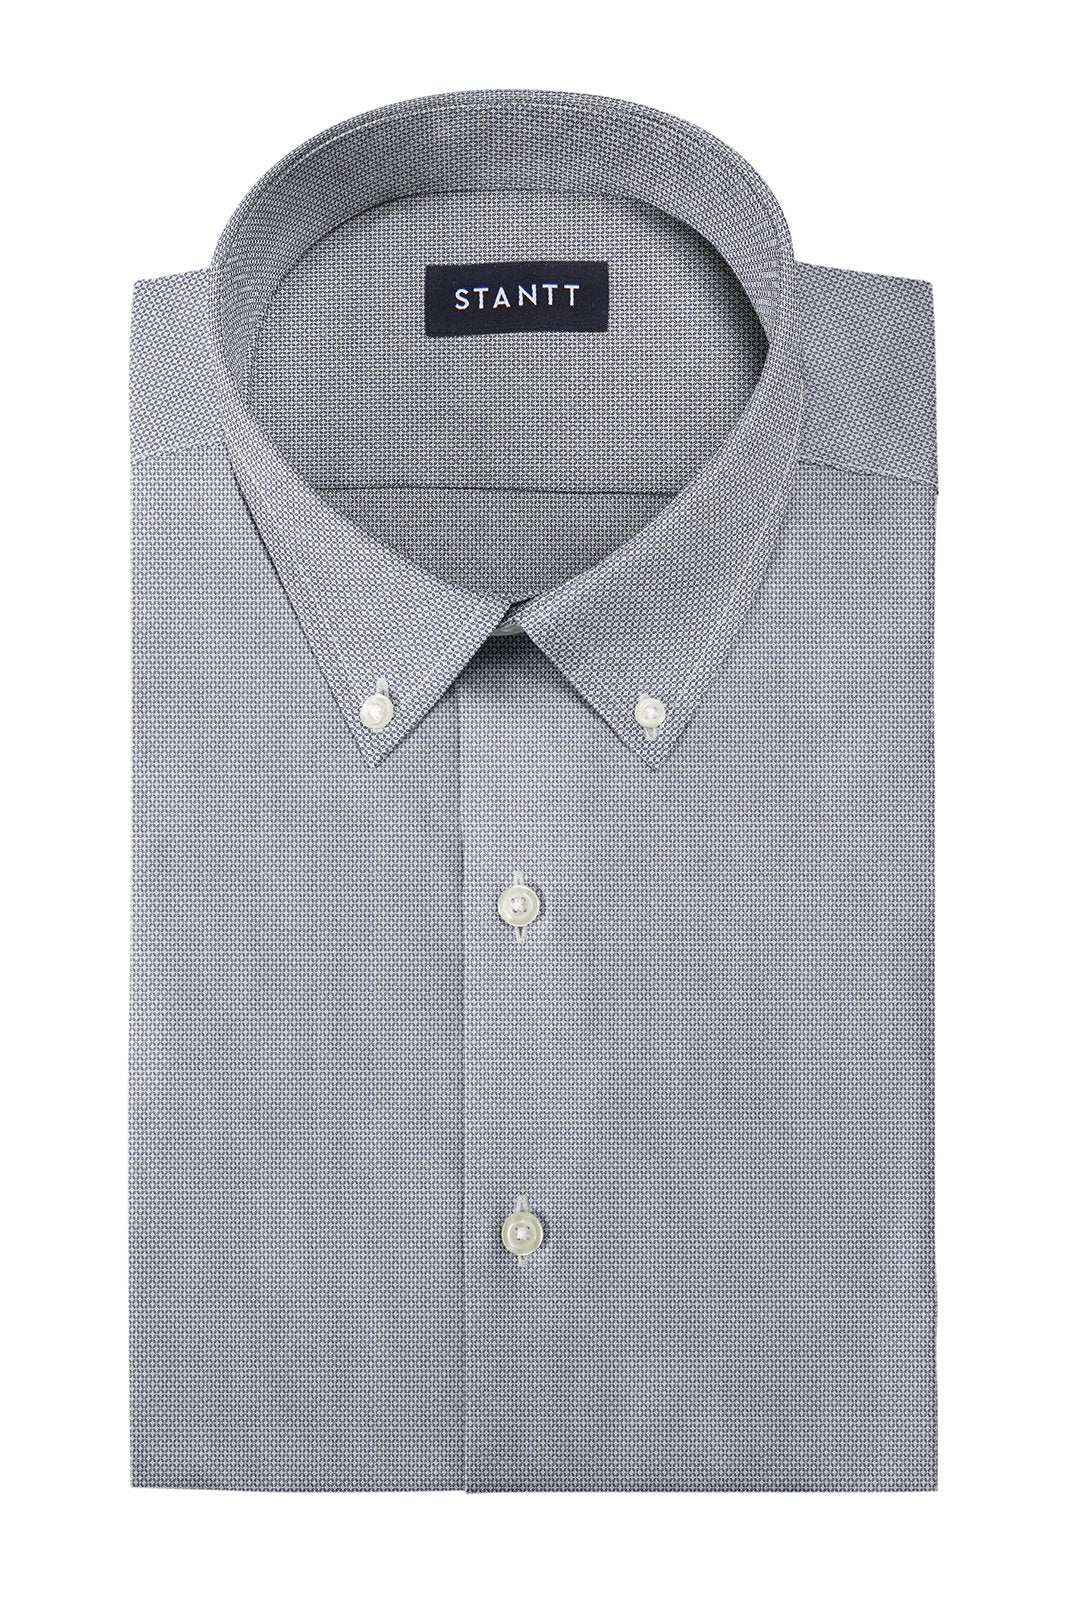 Navy Diamond Weave: Button-Down Collar, Barrel Cuff